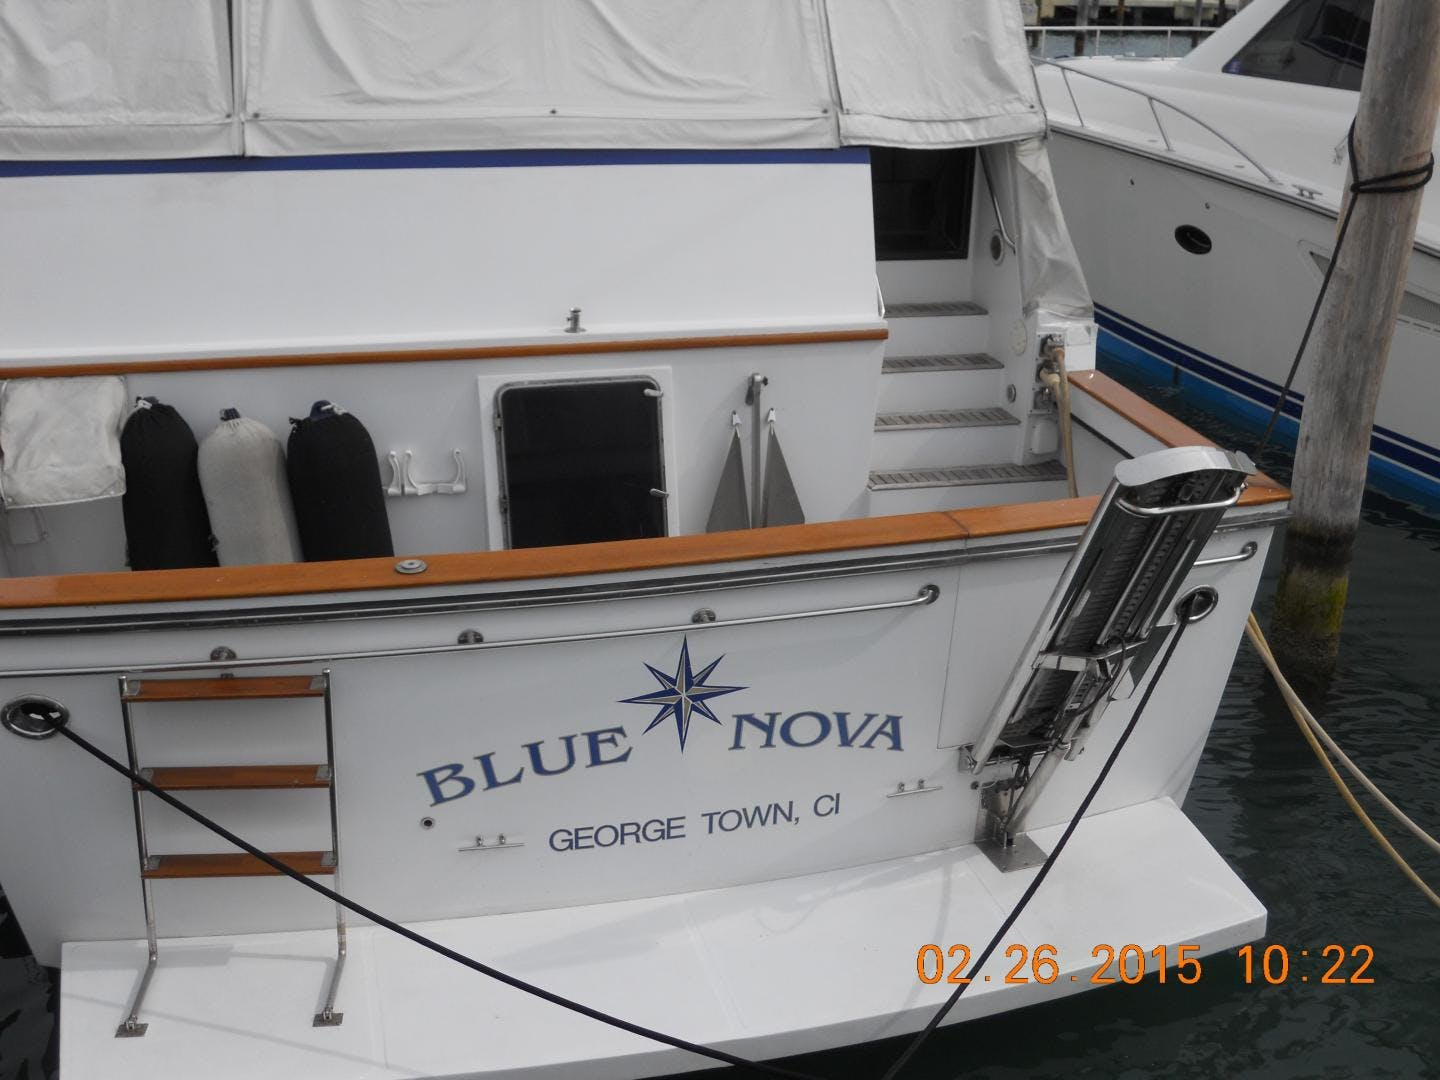 1991 Vantare 72' Cockpit MotorYacht Blue Nova | Picture 4 of 14